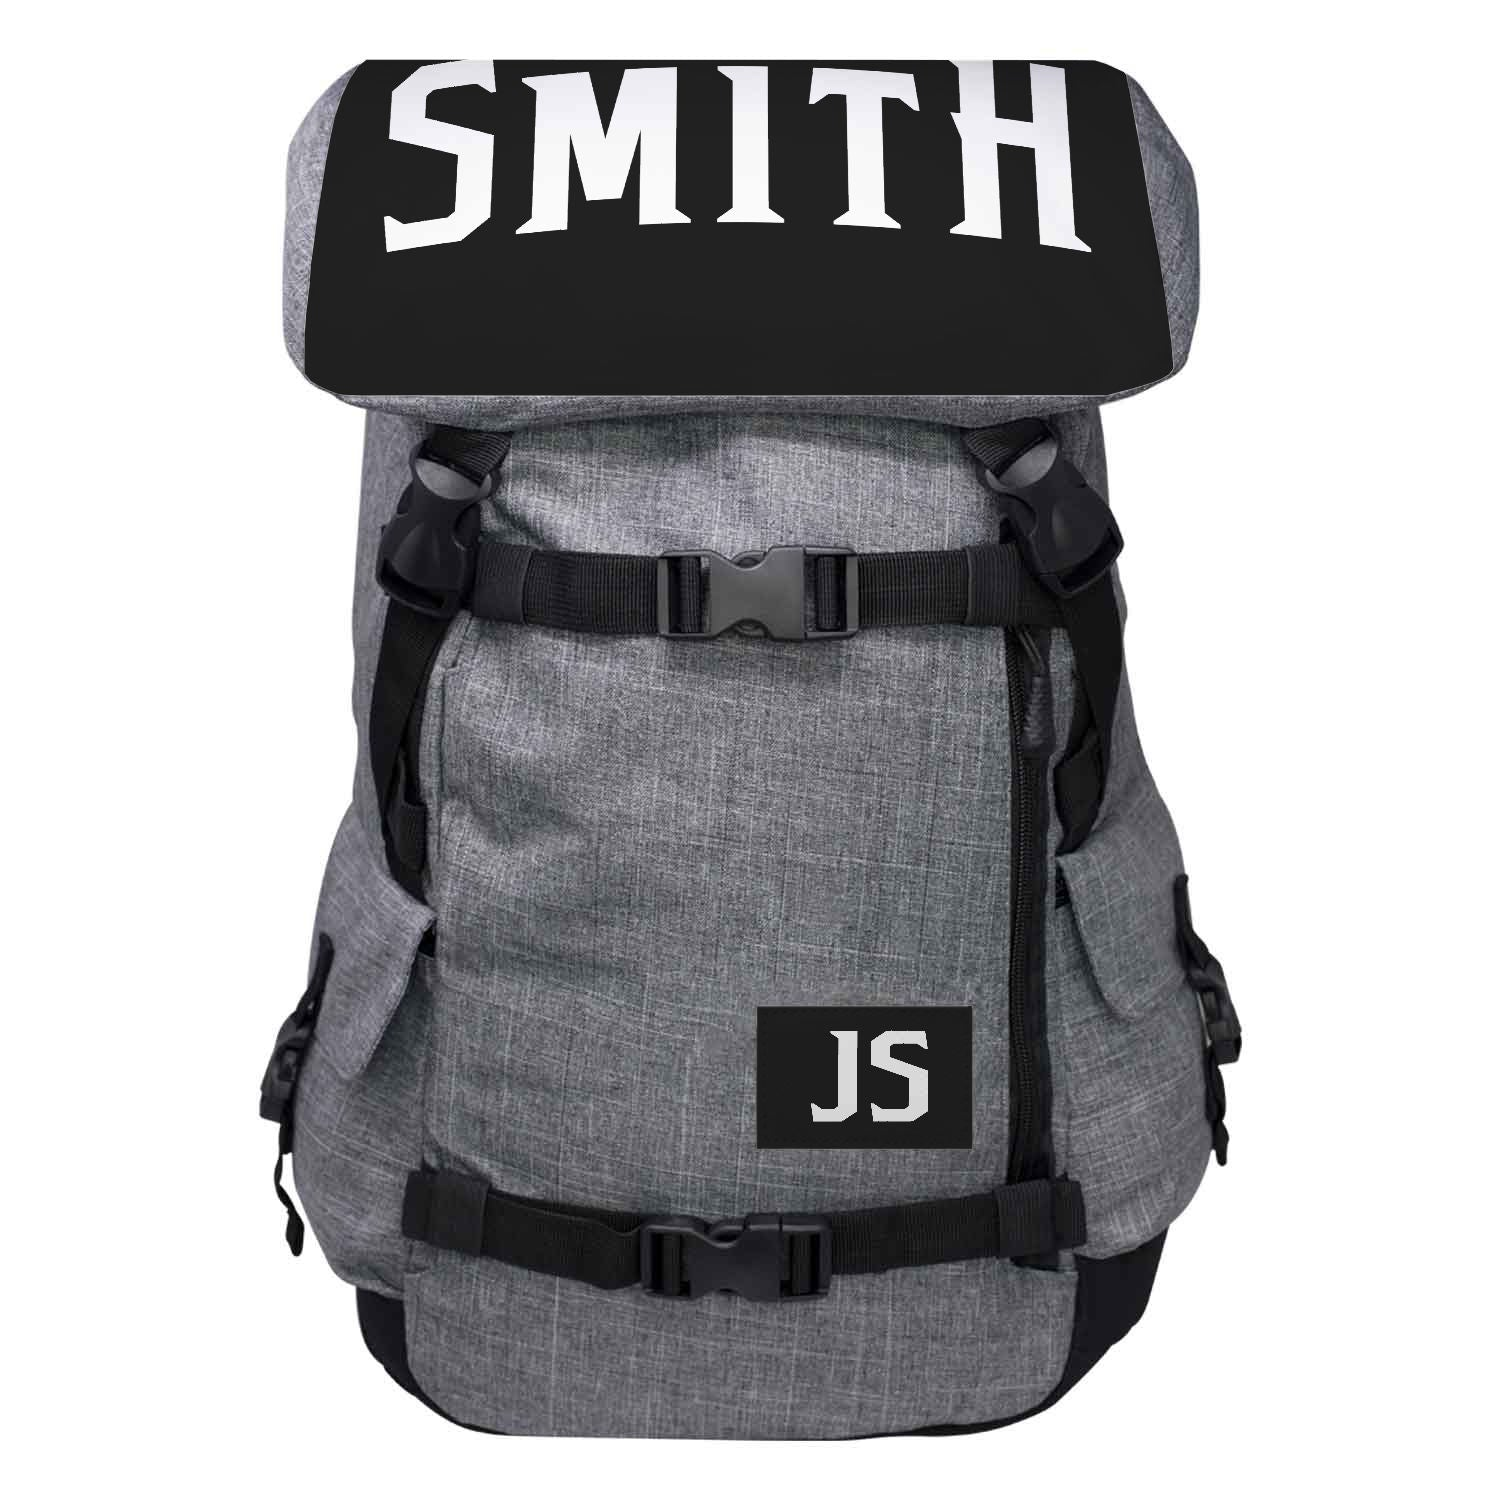 Personalized Penryn Backpack